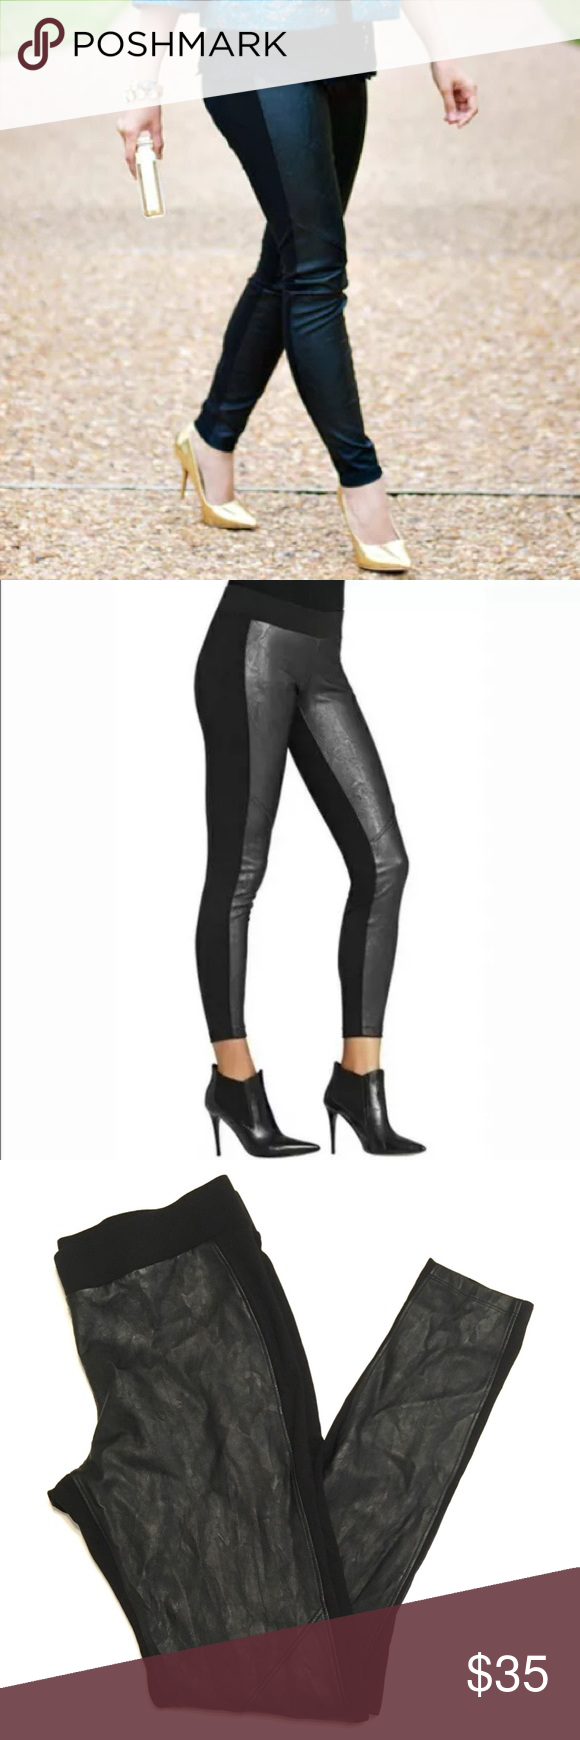 "a2a5e3a974f4b CAbi Stevie Faux Leather Leggings #973 CAbi ""Stevie leggings"" with faux  leather front"